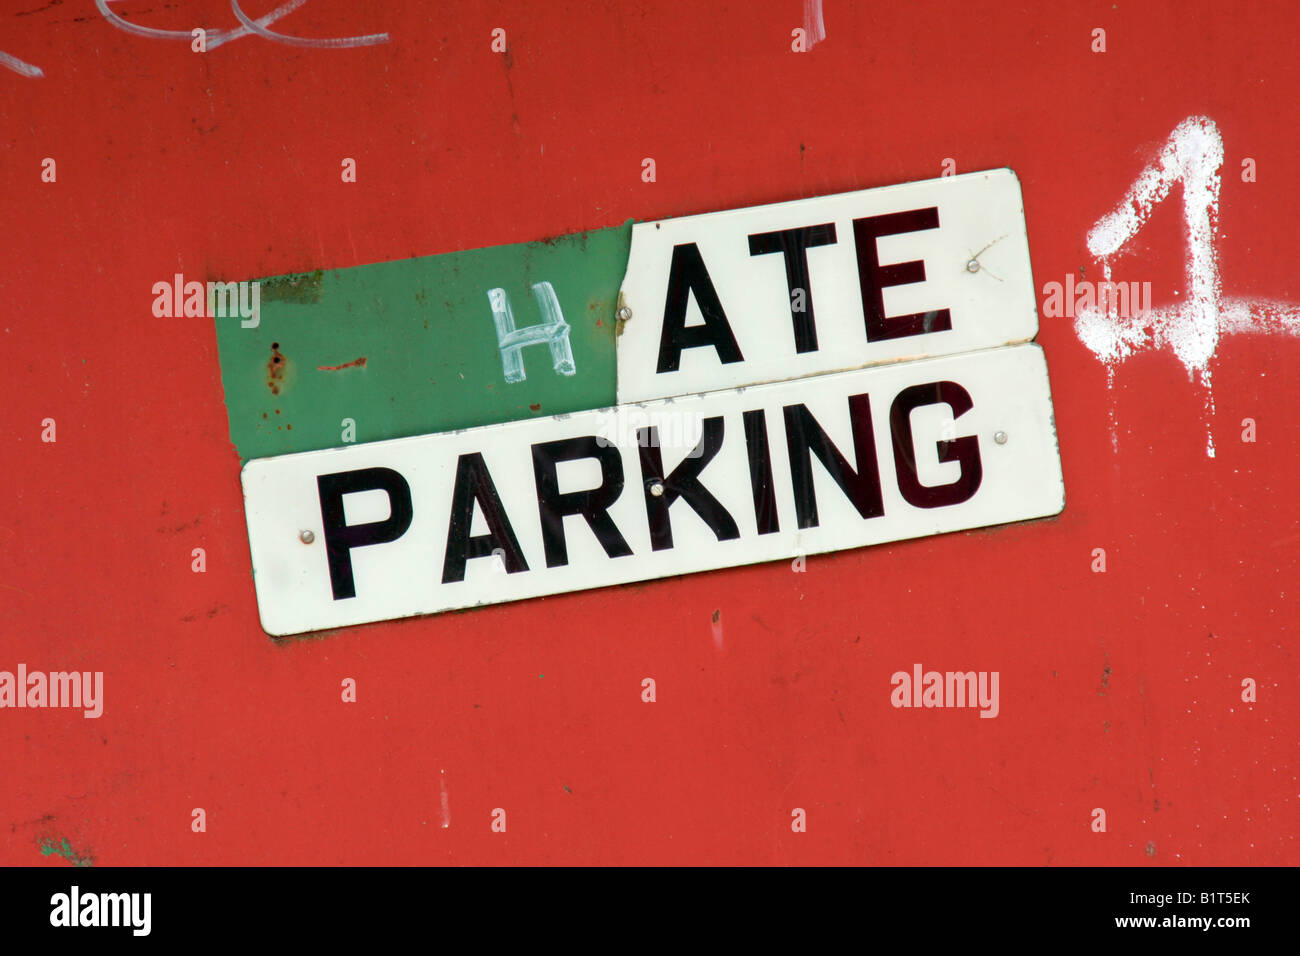 Parking sign defaced to say hate parking - Stock Image